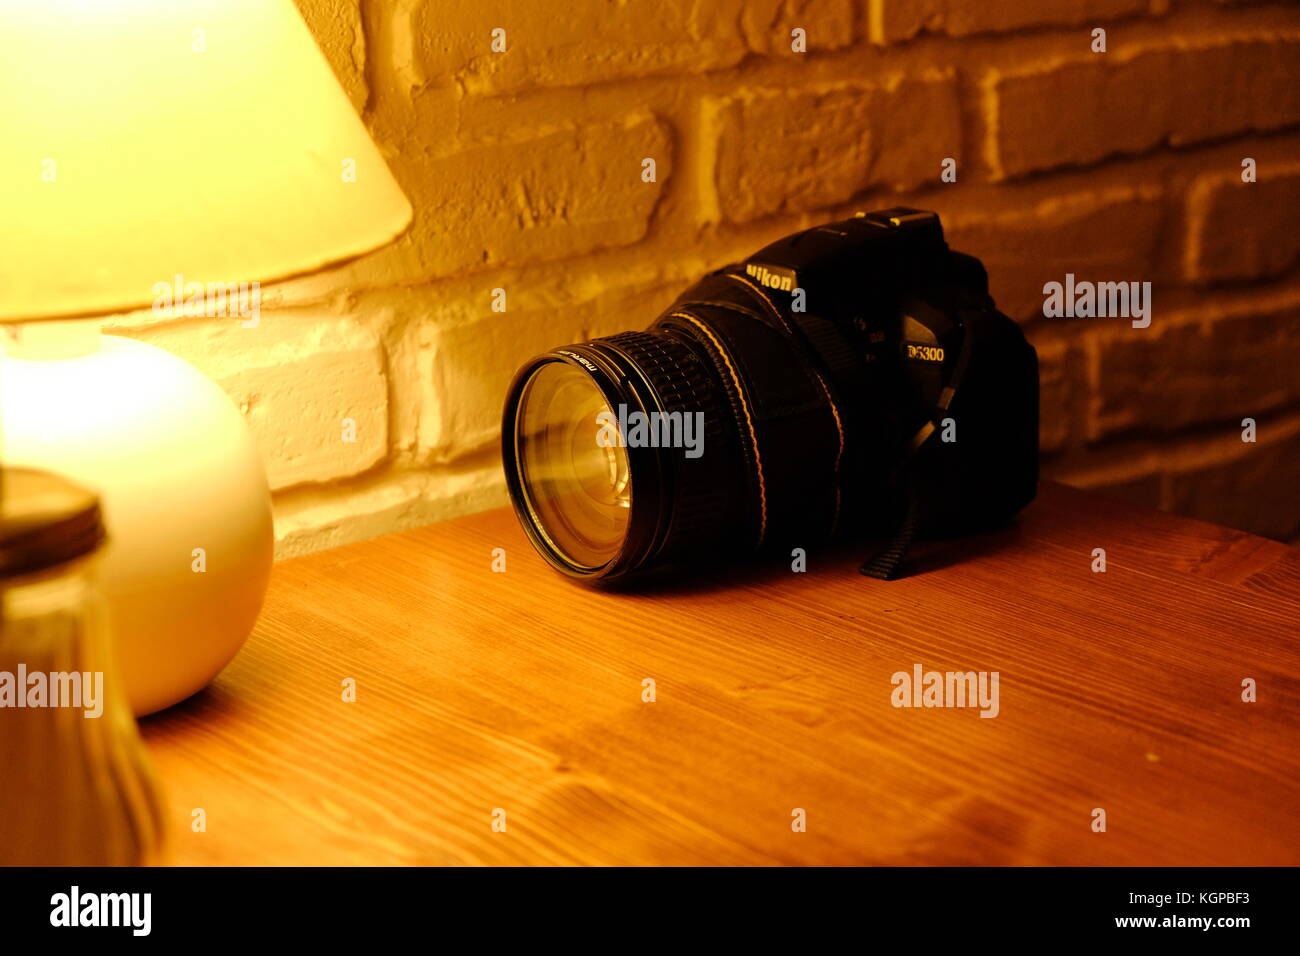 The Nikon camera rests on the table in the cafe after the photo walk - Stock Image